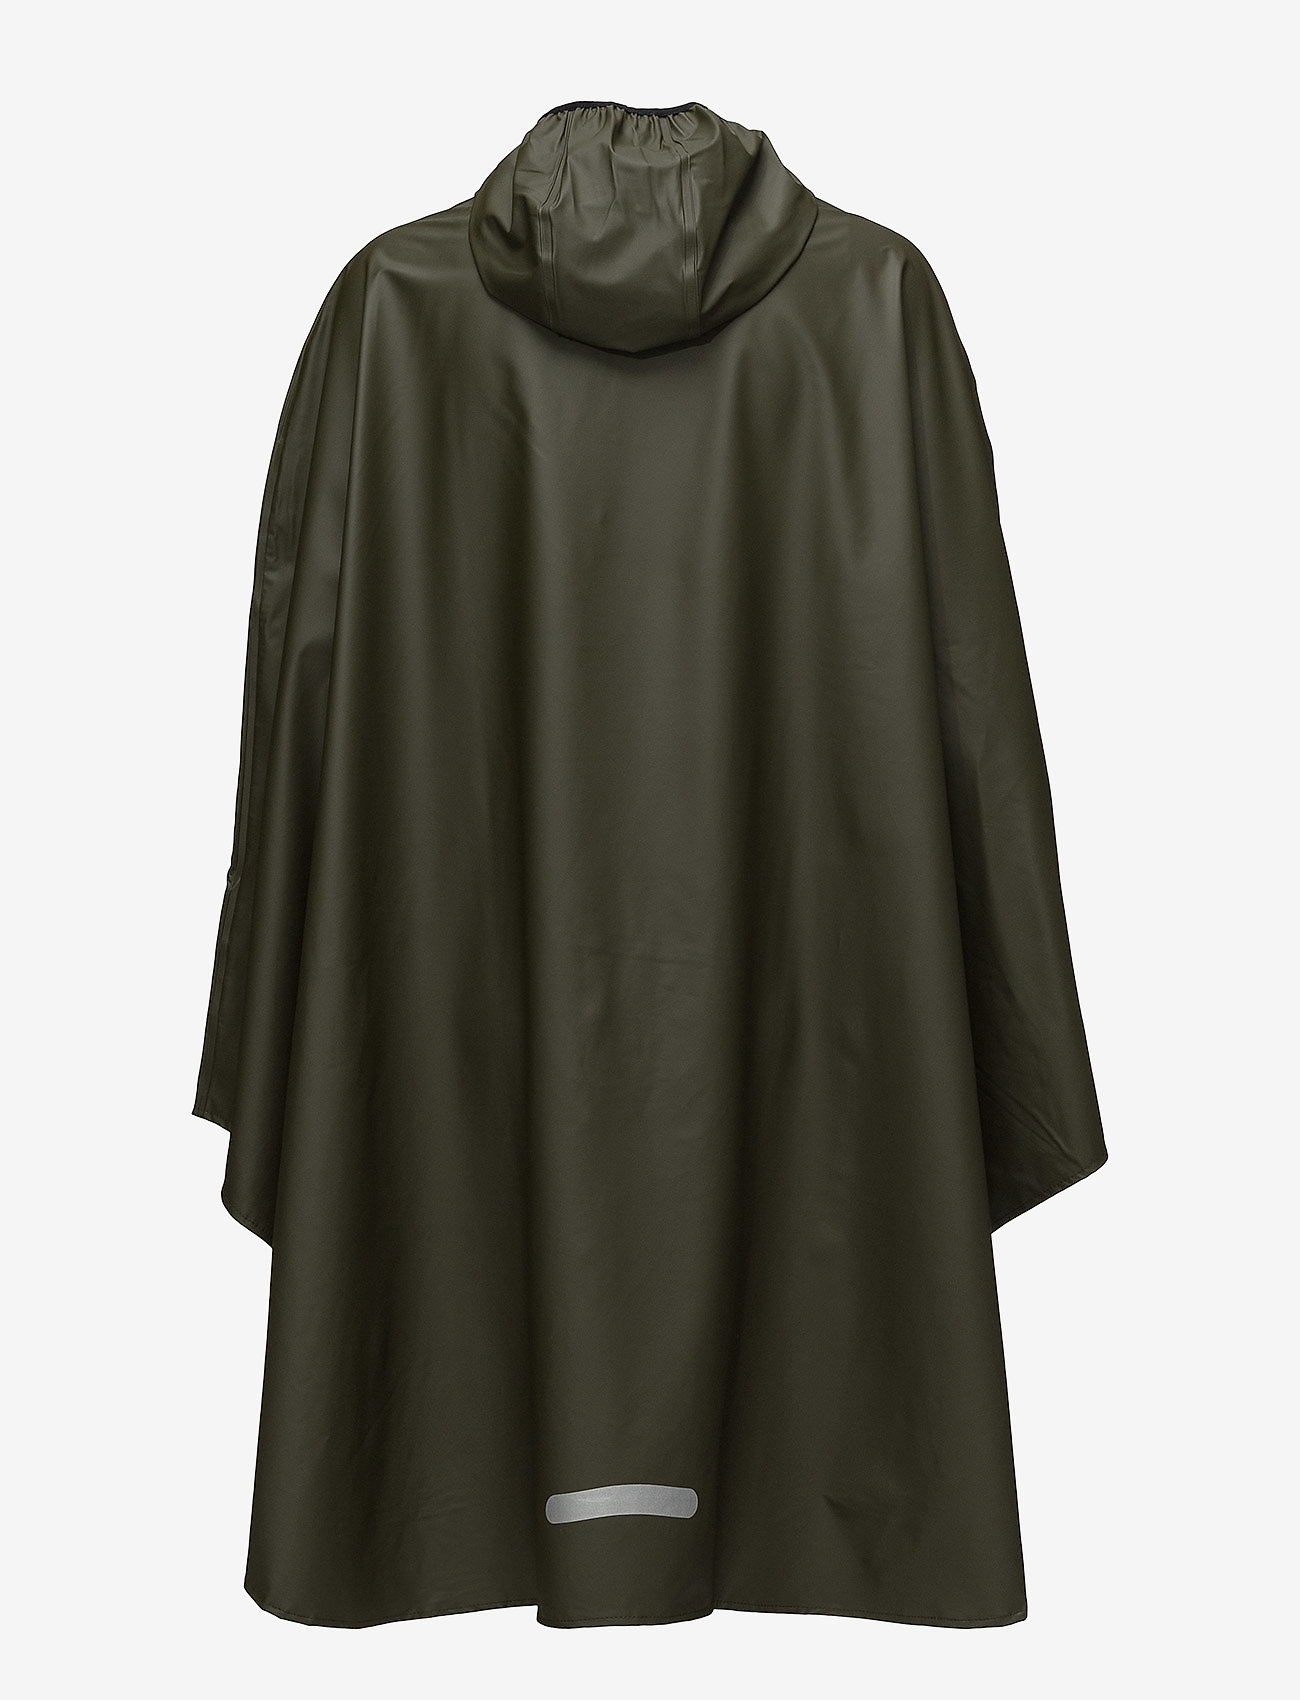 Tretorn - PU LIGHT RAINPONCHO - jackor & rockar - forest green - 1